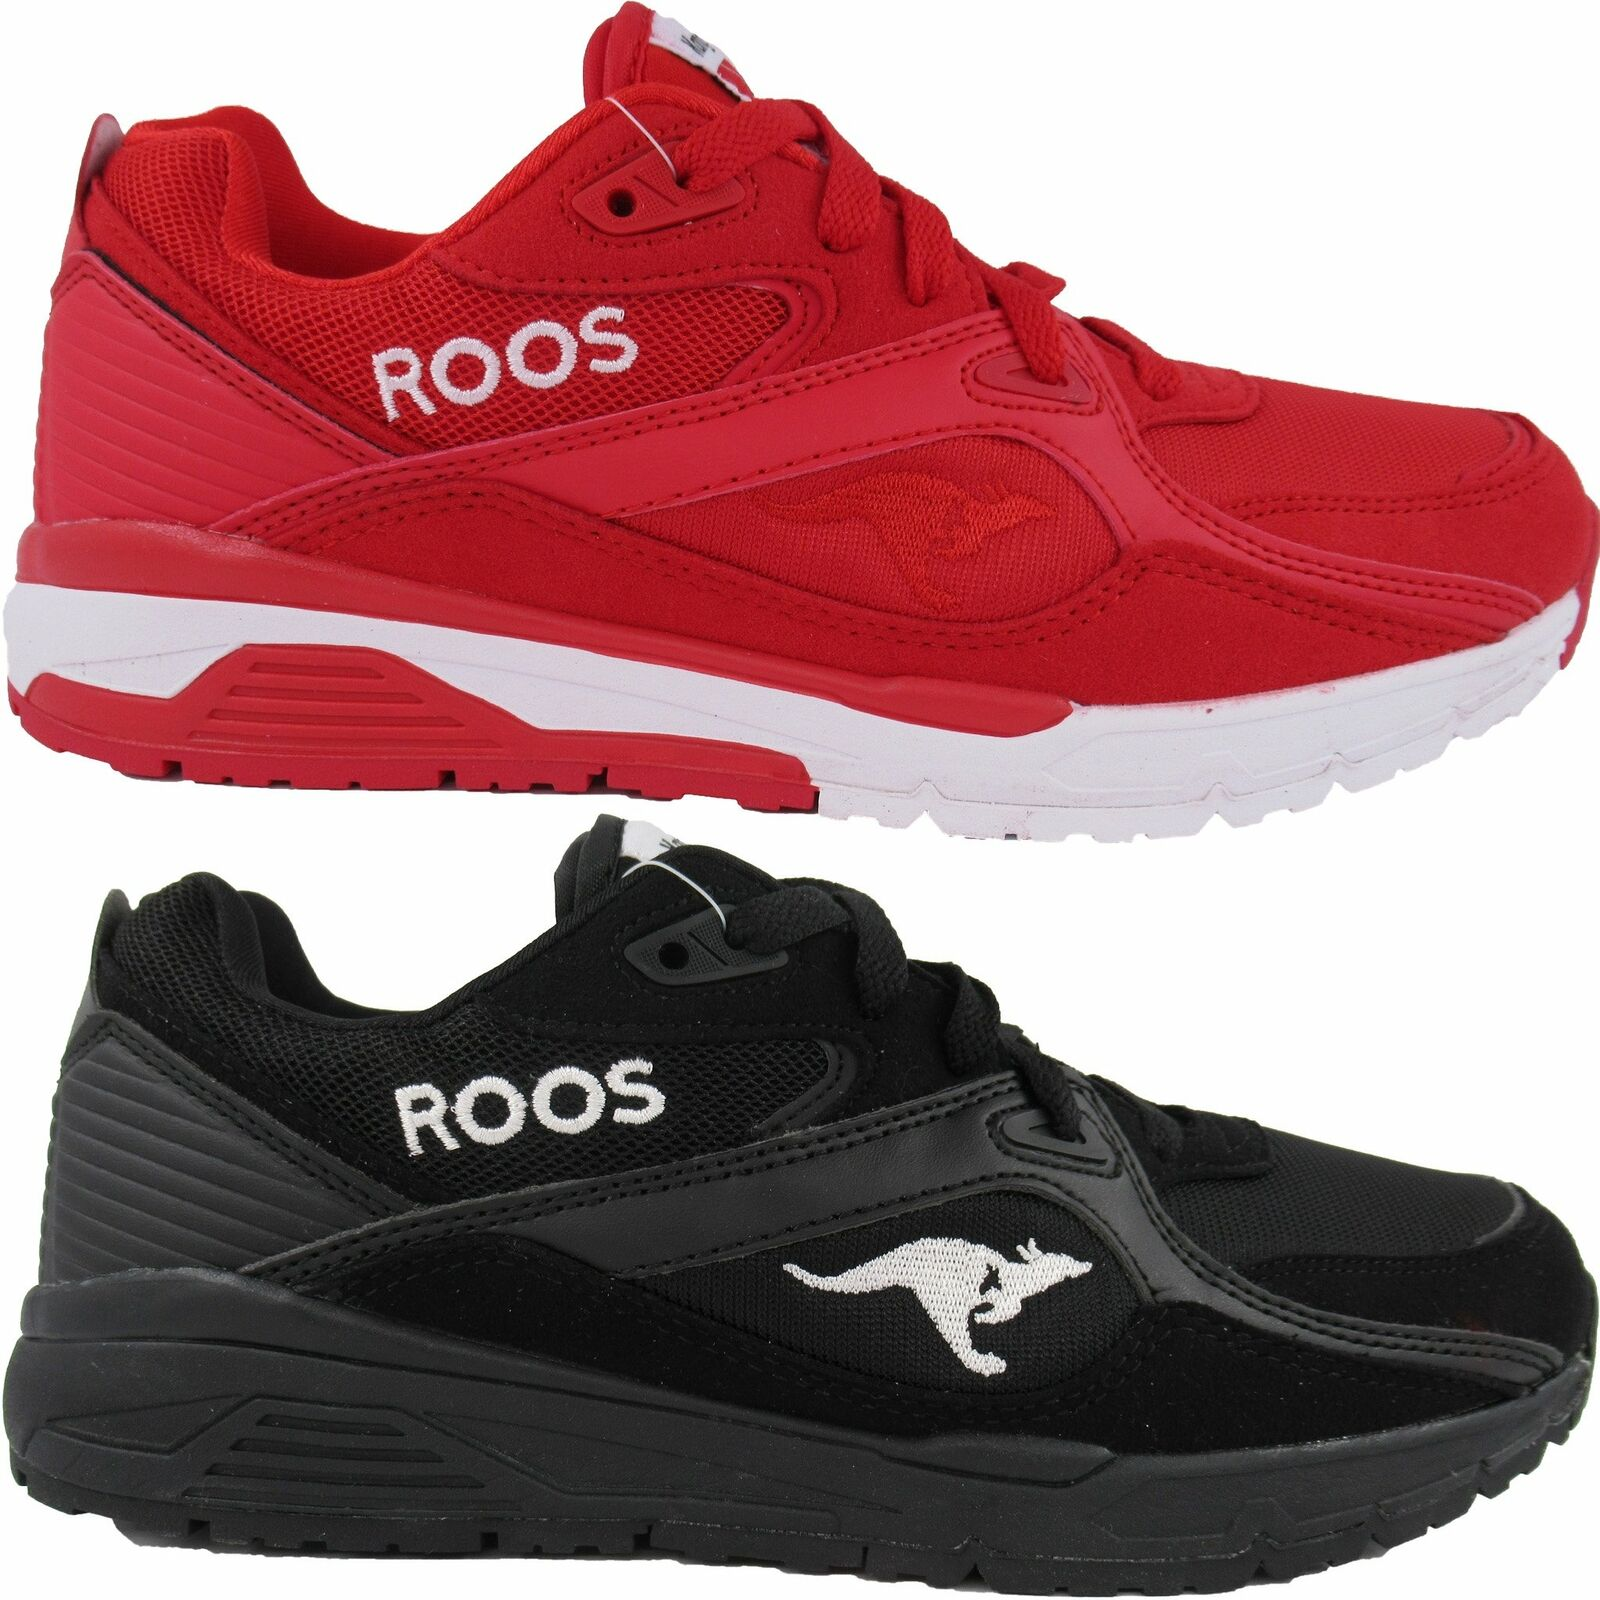 KangaROOS Roos Mens Runaway Pocket Tongue Retro Casual Classic Athletic Shoes